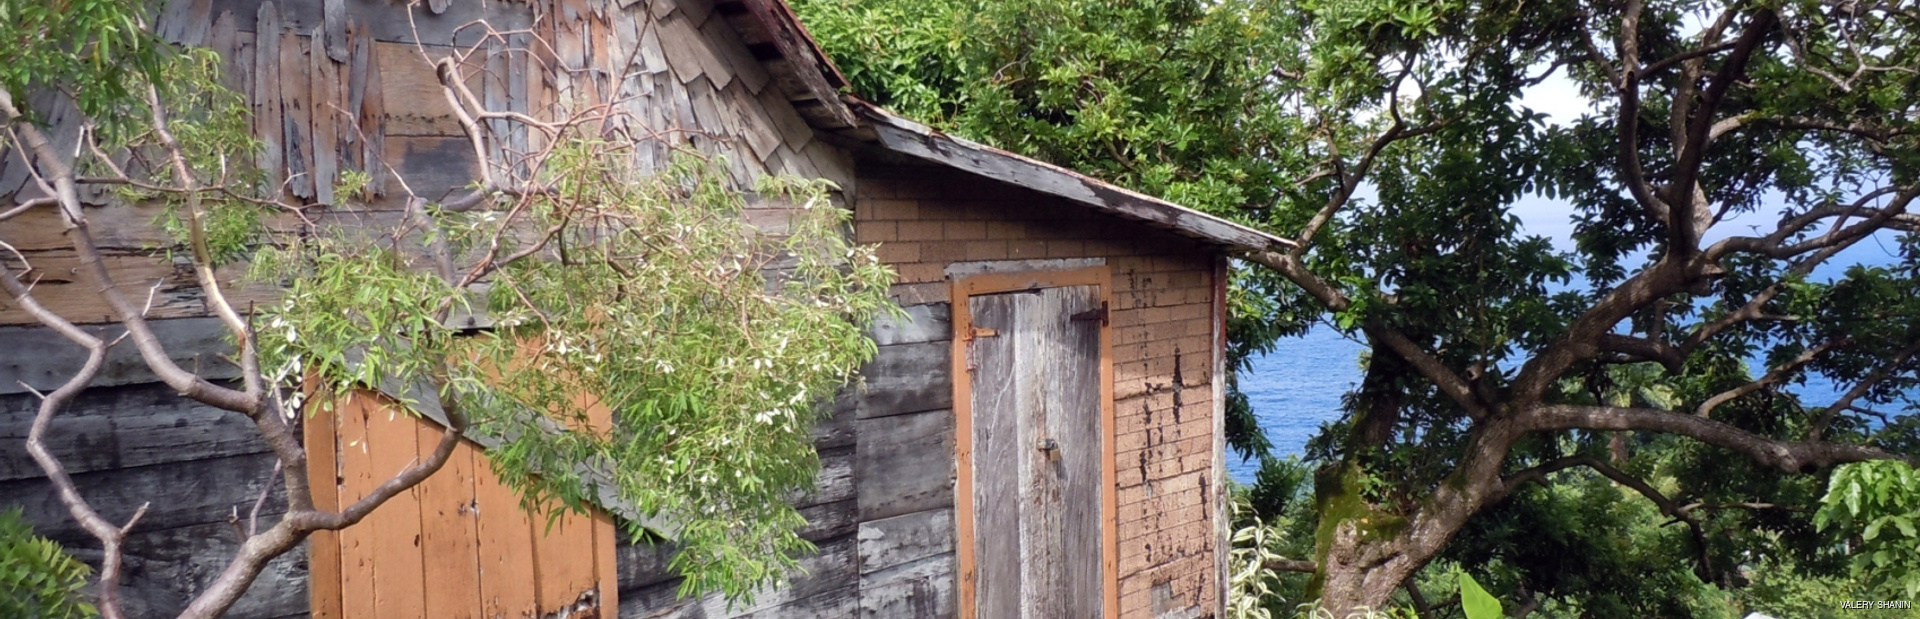 Old wooden house surrounded by green